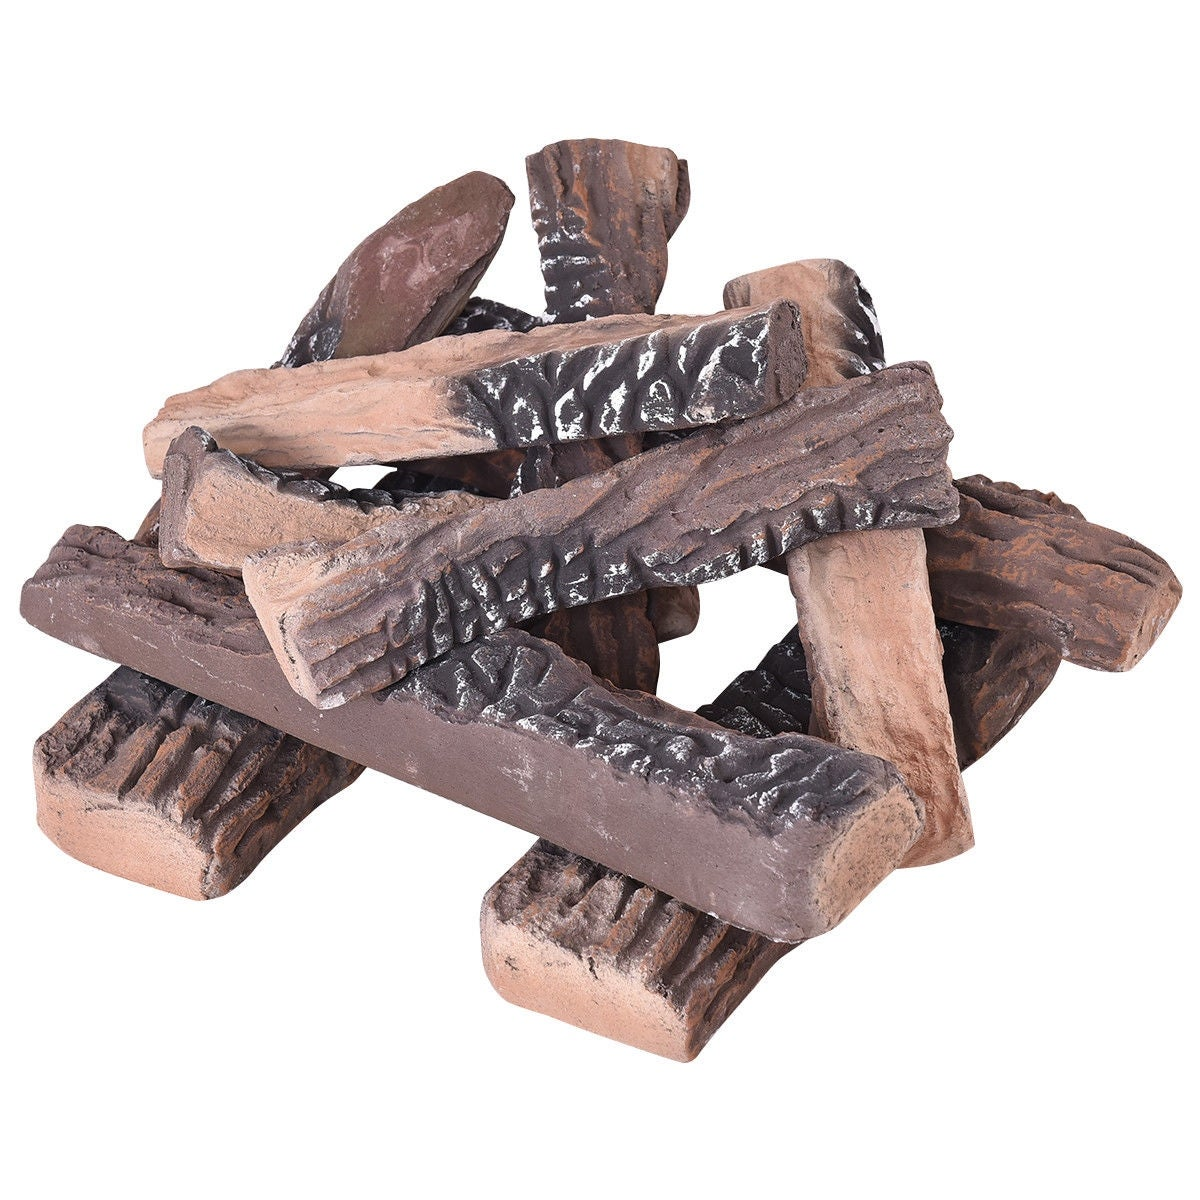 Shop Costway 10PCS Ceramic Wood Logs Gas Fireplace Imitation Wood Propane Firepit  Logs - as pic - On Sale - Free Shipping Today - Overstock.com - 18502705 - Shop Costway 10PCS Ceramic Wood Logs Gas Fireplace Imitation Wood